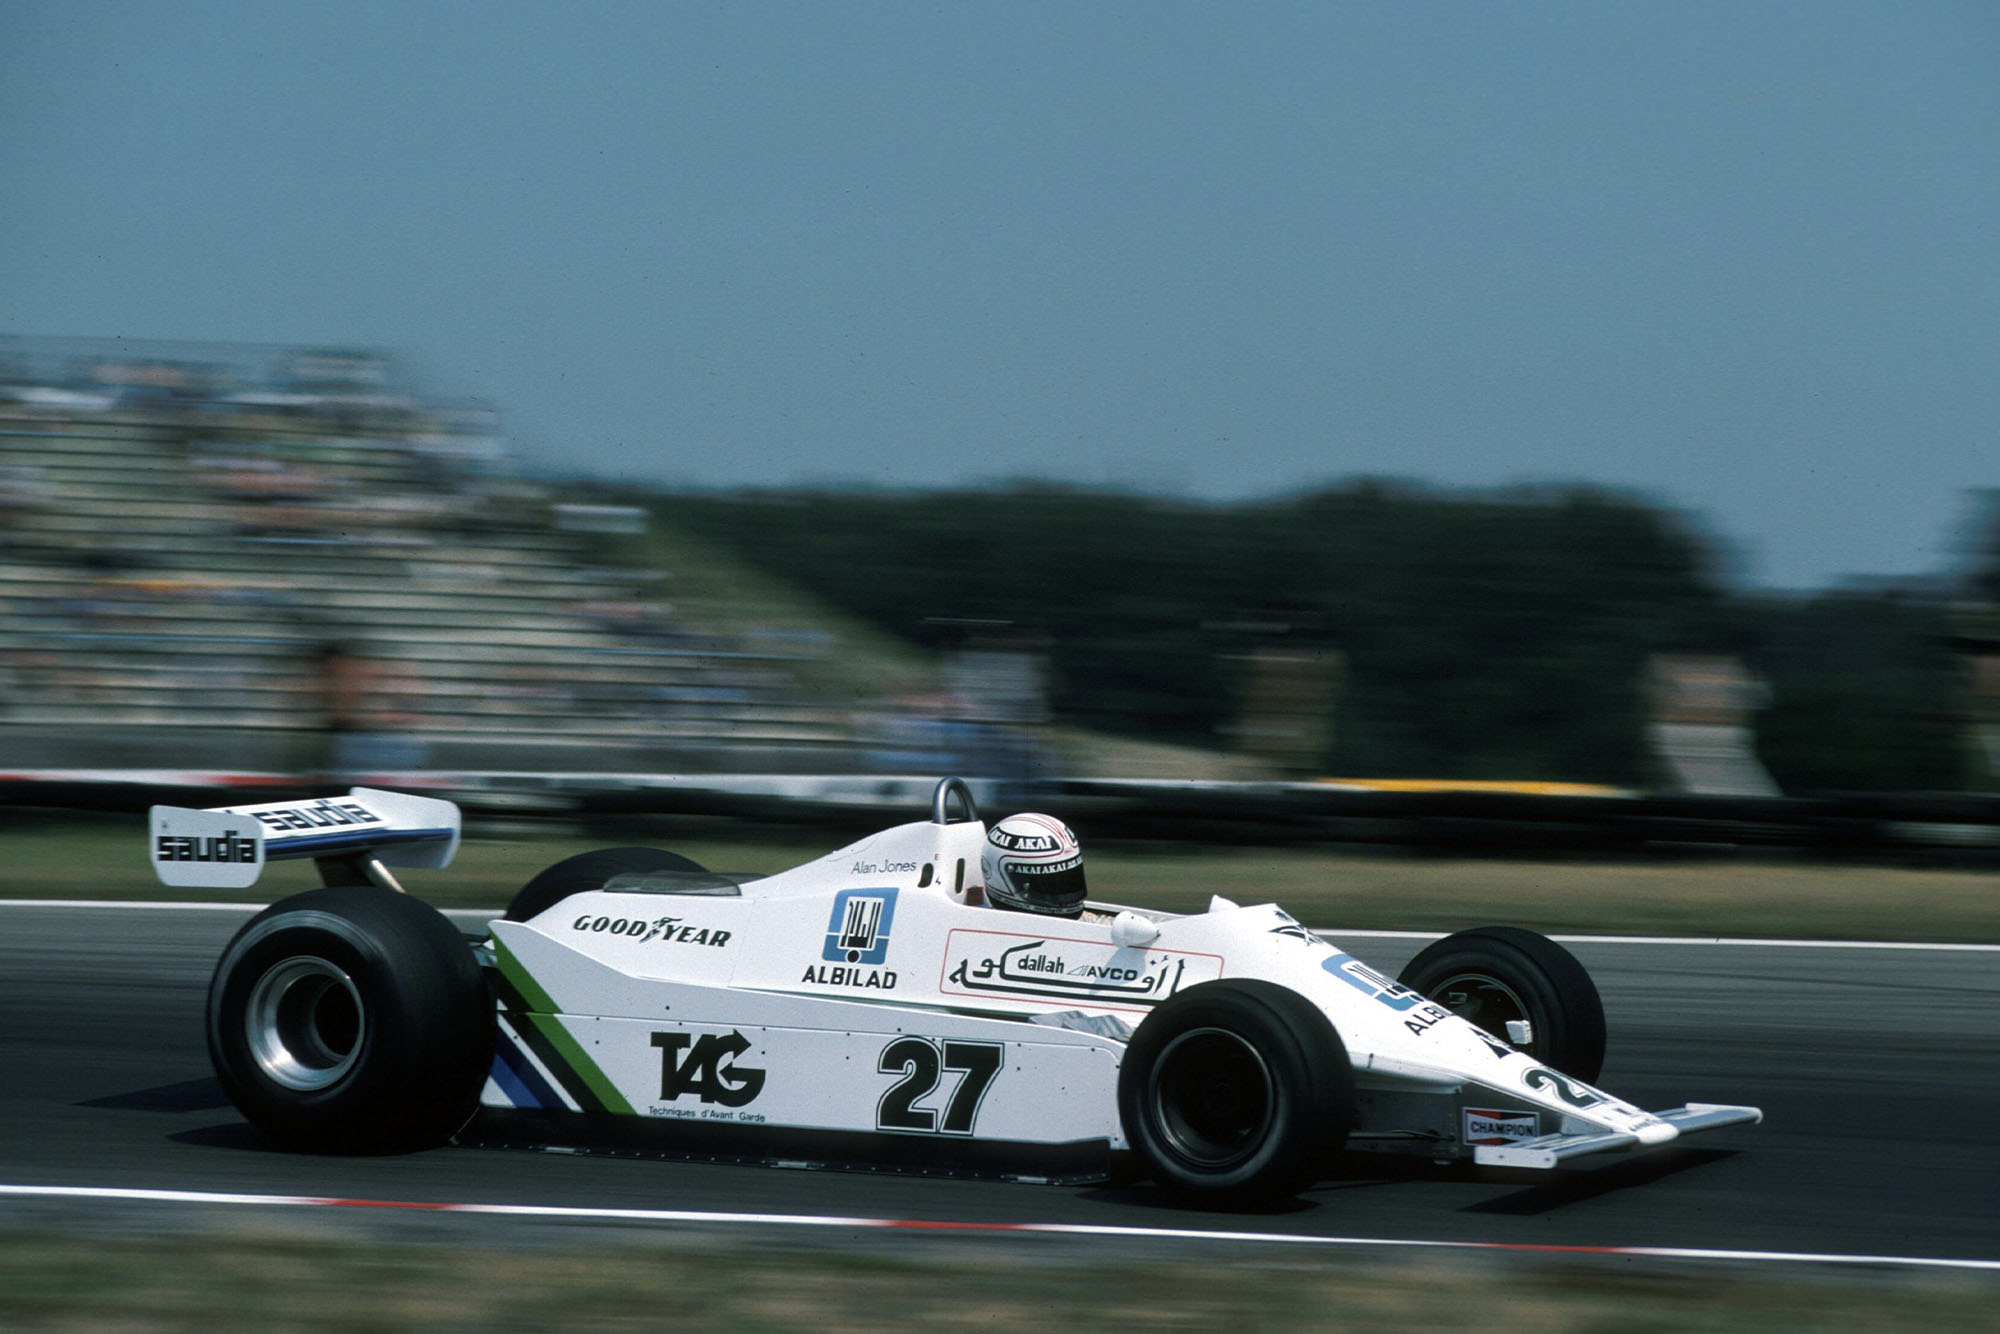 1979 German GP feature